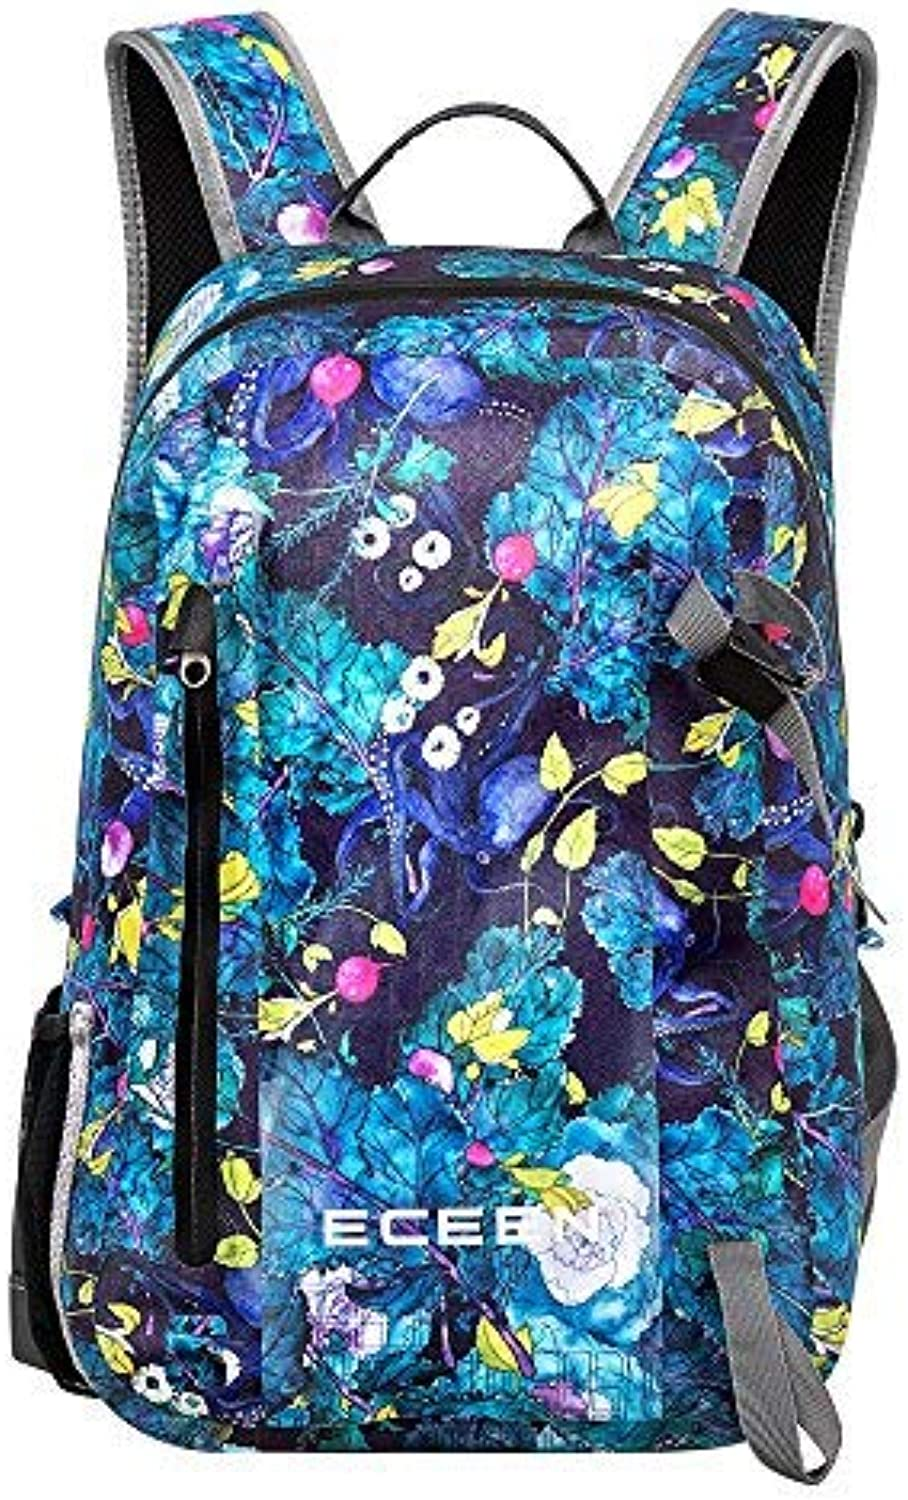 ECEEN Waterproof Backpack 20L Dry Bag with Padded Shoulder Straps Phone Pocket & Bottle & Hiking Stick Holder Perfect for Kayaking Swim Beach Hiking Boat Sailing Camping Fishing (FlowerPack)